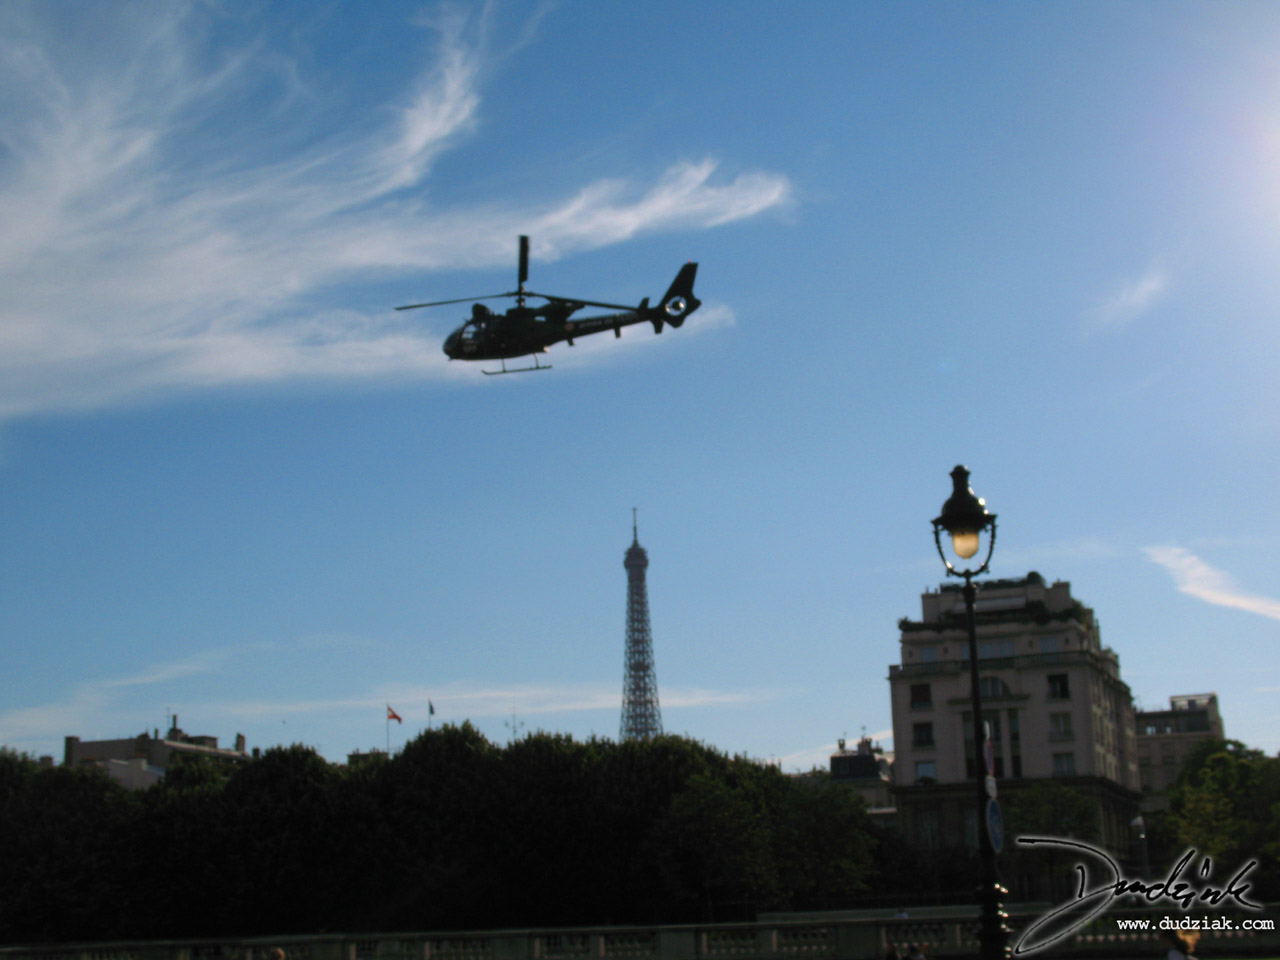 Paris,  Eiffel Tower,  French Military,  Helicopter,  Quatorze Juillet